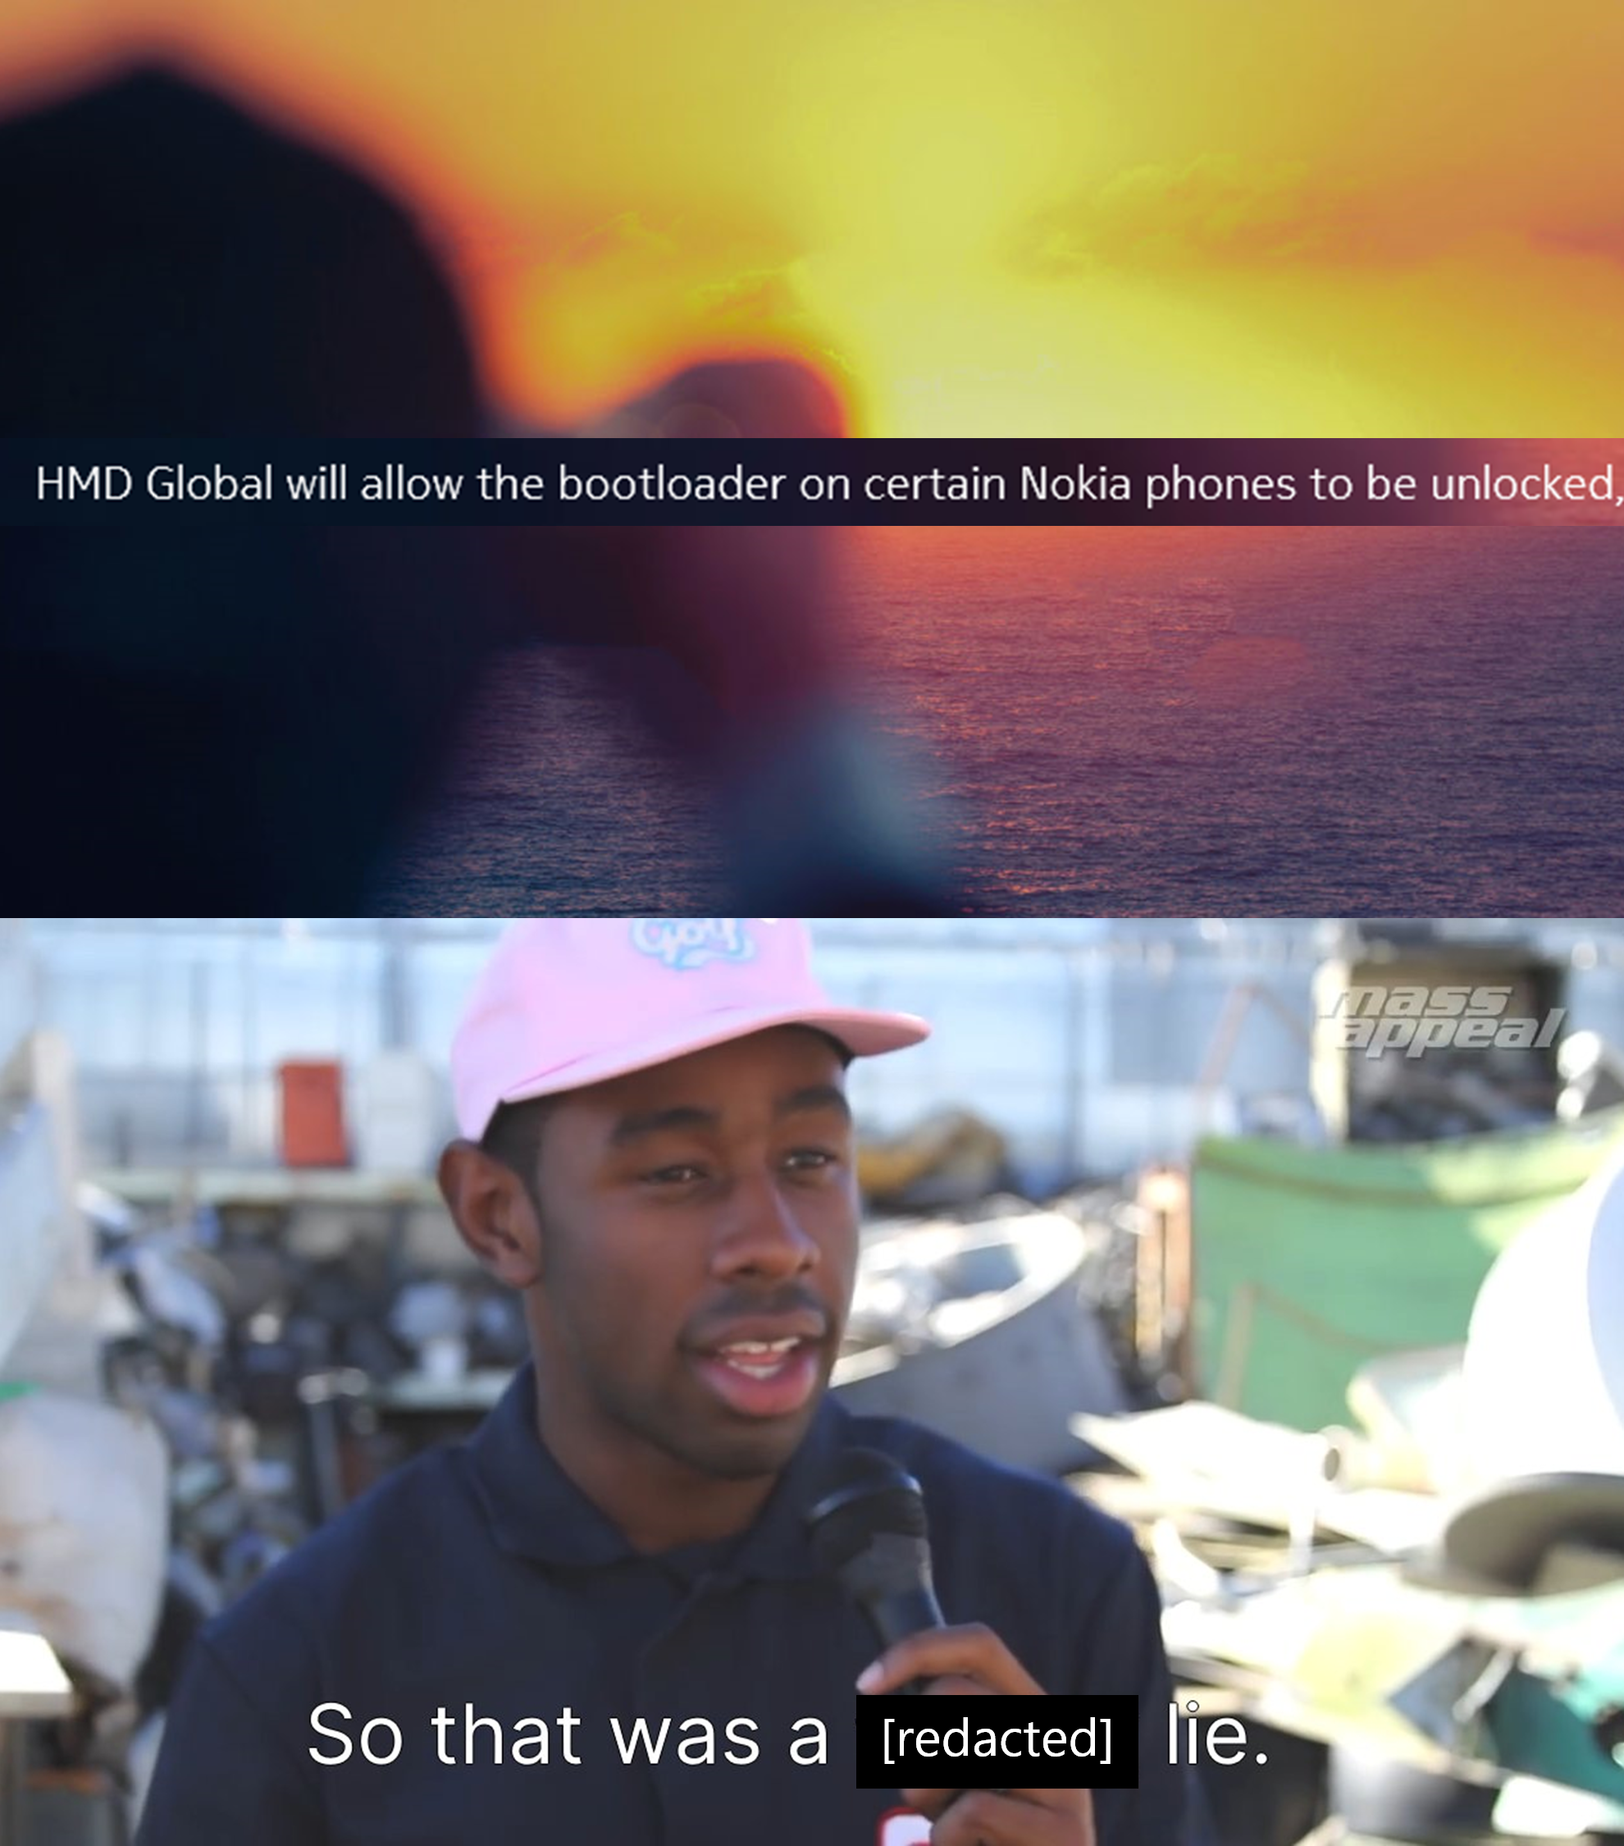 """Top text: HMD Global will allow bootloader on certain Nokia phones to be unlocked. Bottom text: """"So that was a [redacted] lie."""""""